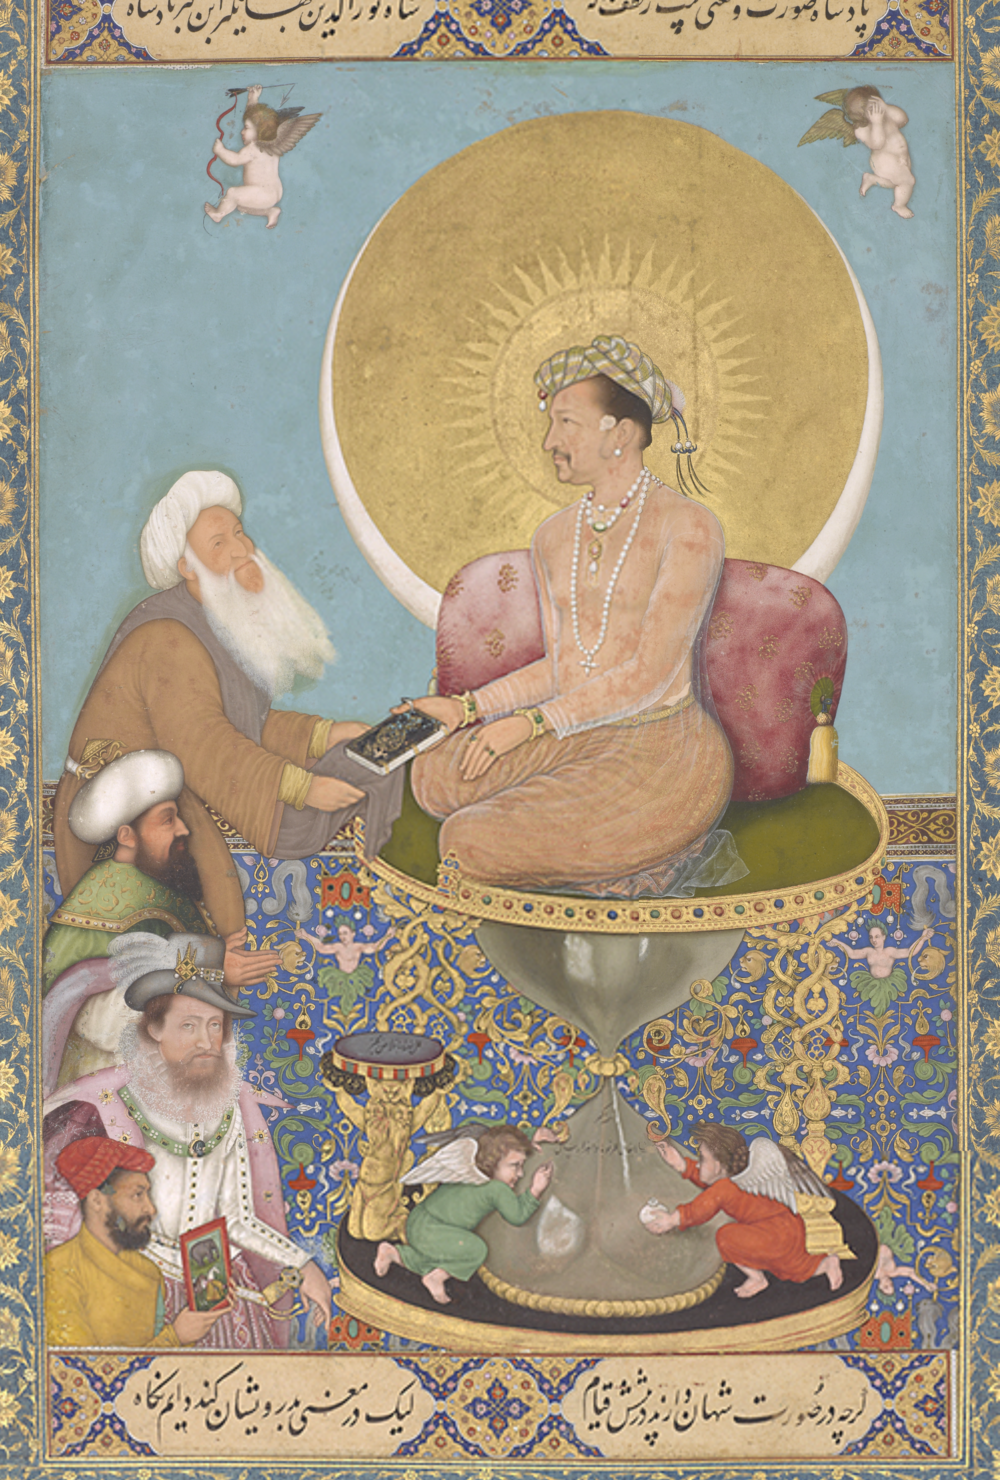 Jahangir Preferring a Sufi Shaykh to Kings  From the St. Petersburg Album Signed by Bichitr India, Mughal dynasty, ca. 1615–18 Margins by Hadi, Iran, dated AH 1169/1755–56 CE Opaque watercolor, ink, and gold on paper Purchase  Freer Gallery of Art F1942.15